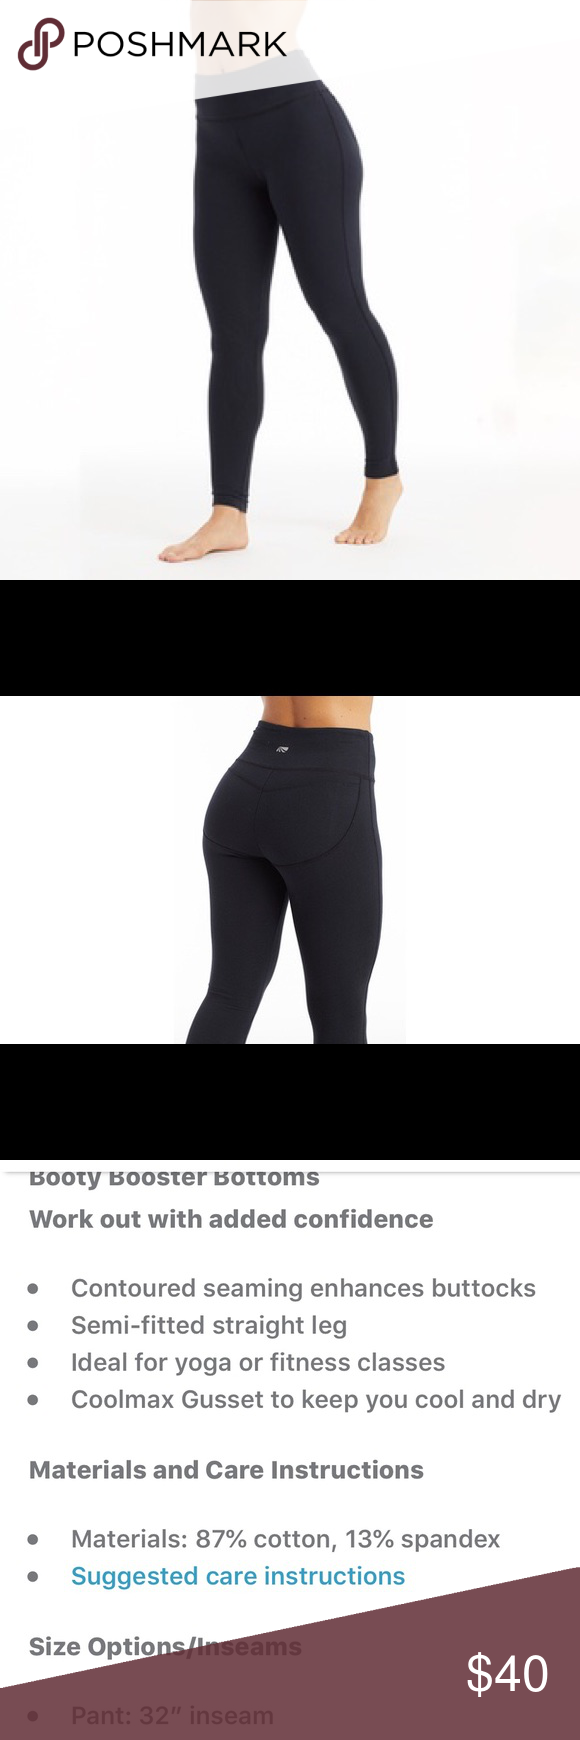 "a2438272493 Booty booster bottoms Marika booty booster bottoms. Hold your shape!!! 3""  waist band. Best workout leggings ever! Marika Pants Leggings"